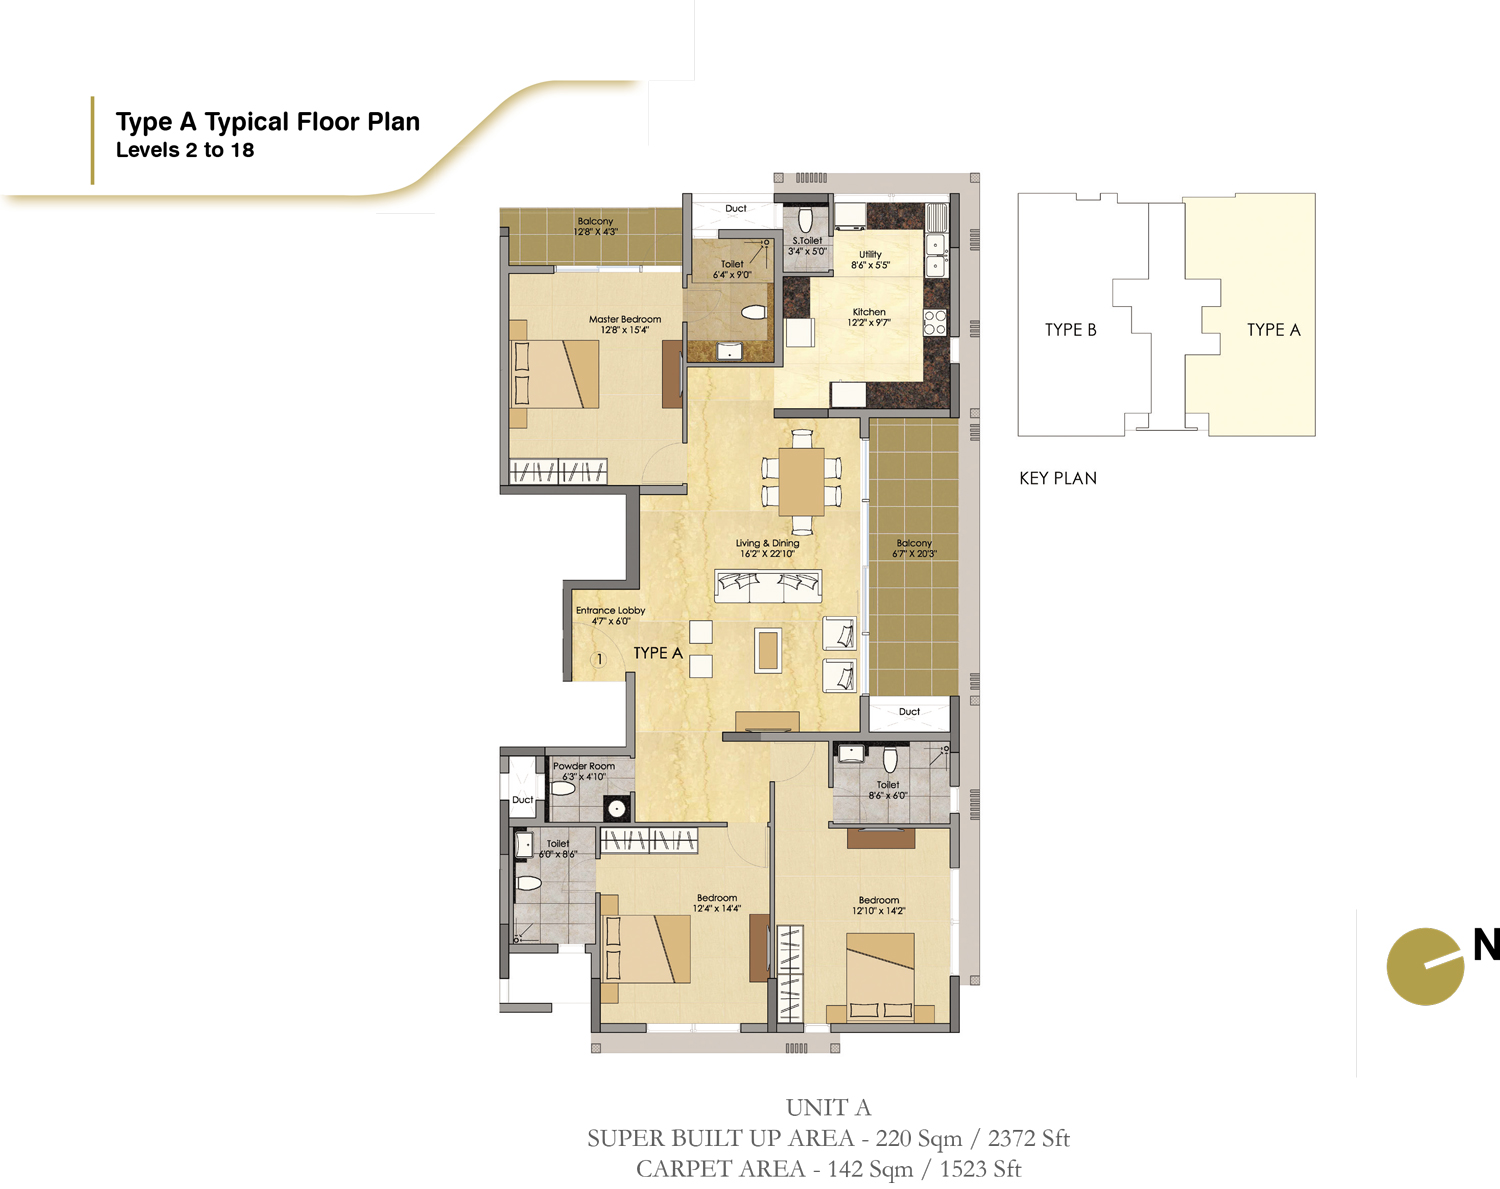 Type A - 2372 Sq Ft